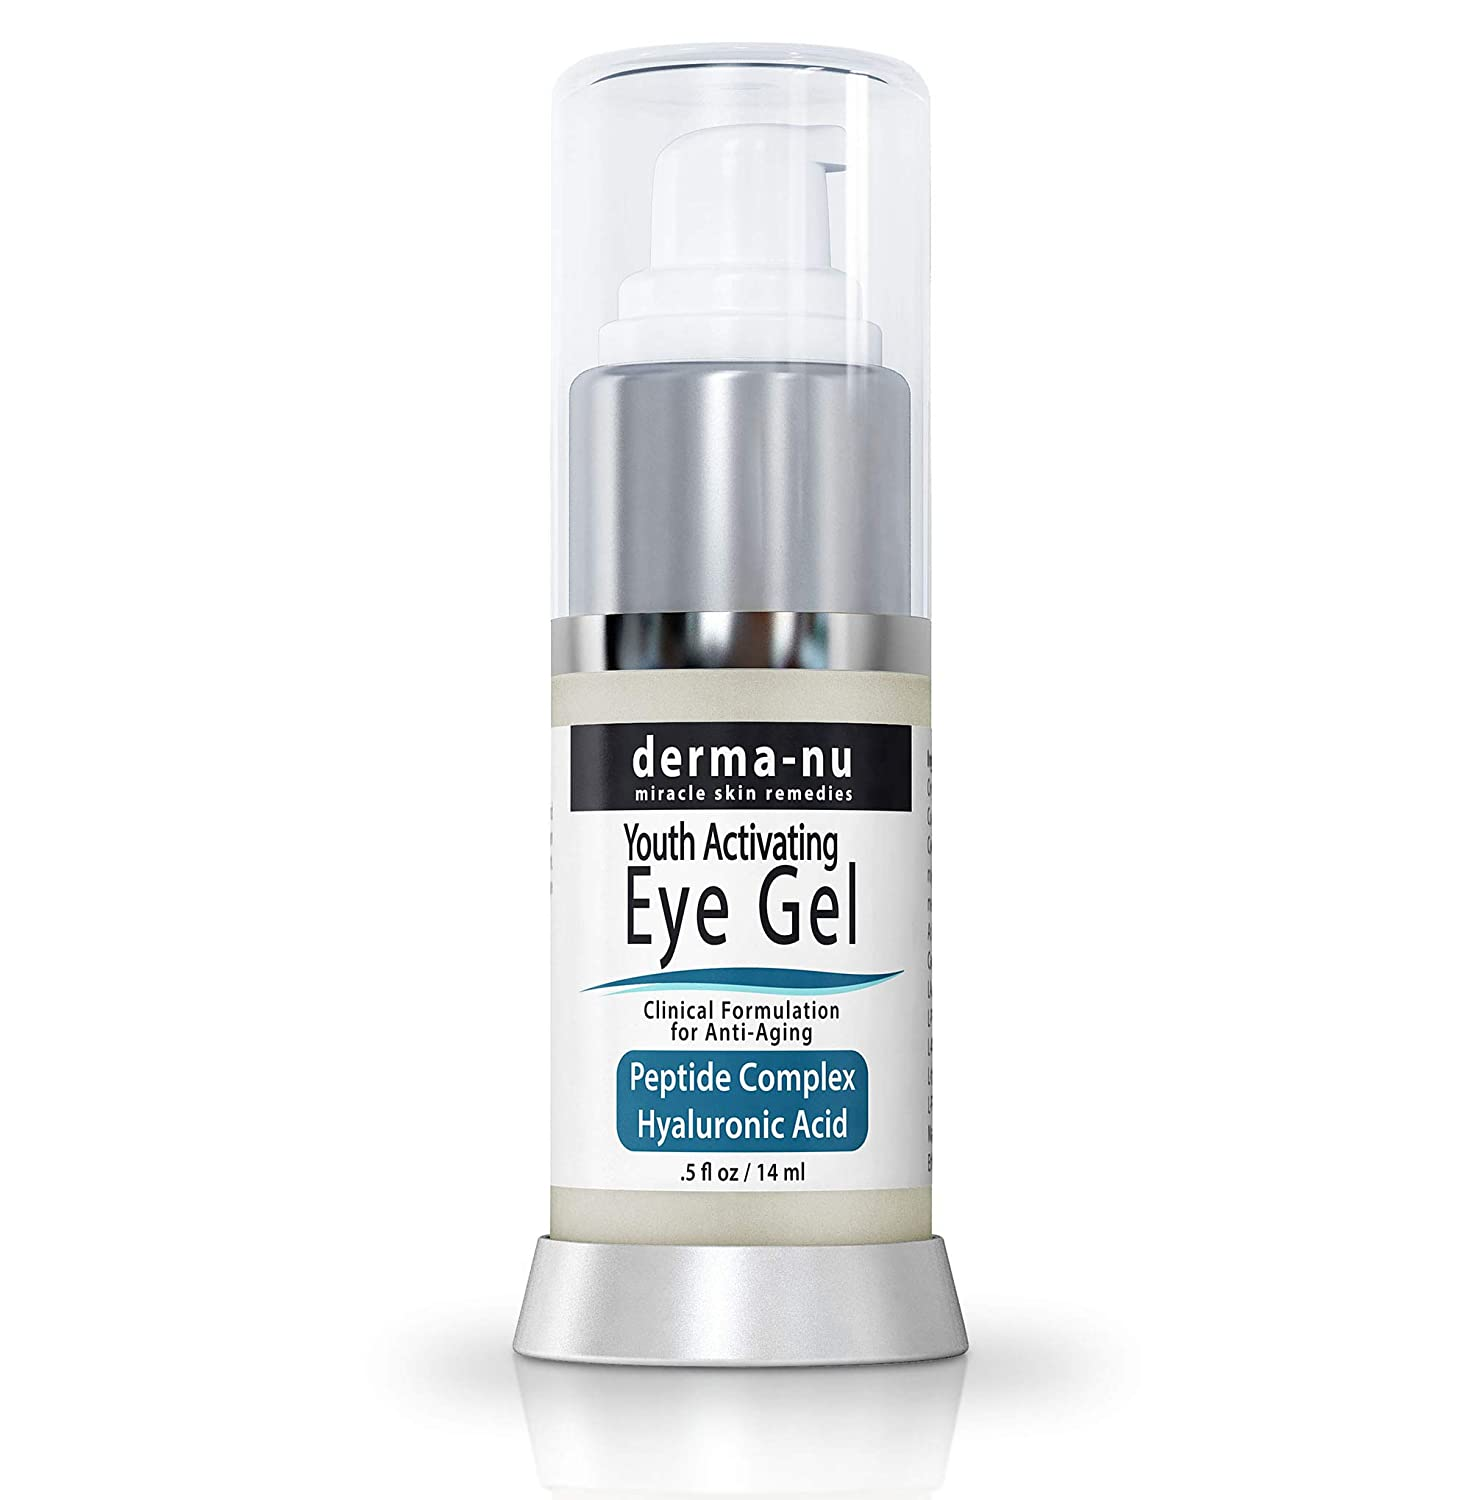 Eye Gel Anti-Aging Cream - Treatment for dark Circles, Puffiness, Wrinkles and Fine Lines - Hyaluronic Acid Formula Infused Serum with Aloe Vera & Jojoba for Ageless Smooth Skin - .5 oz